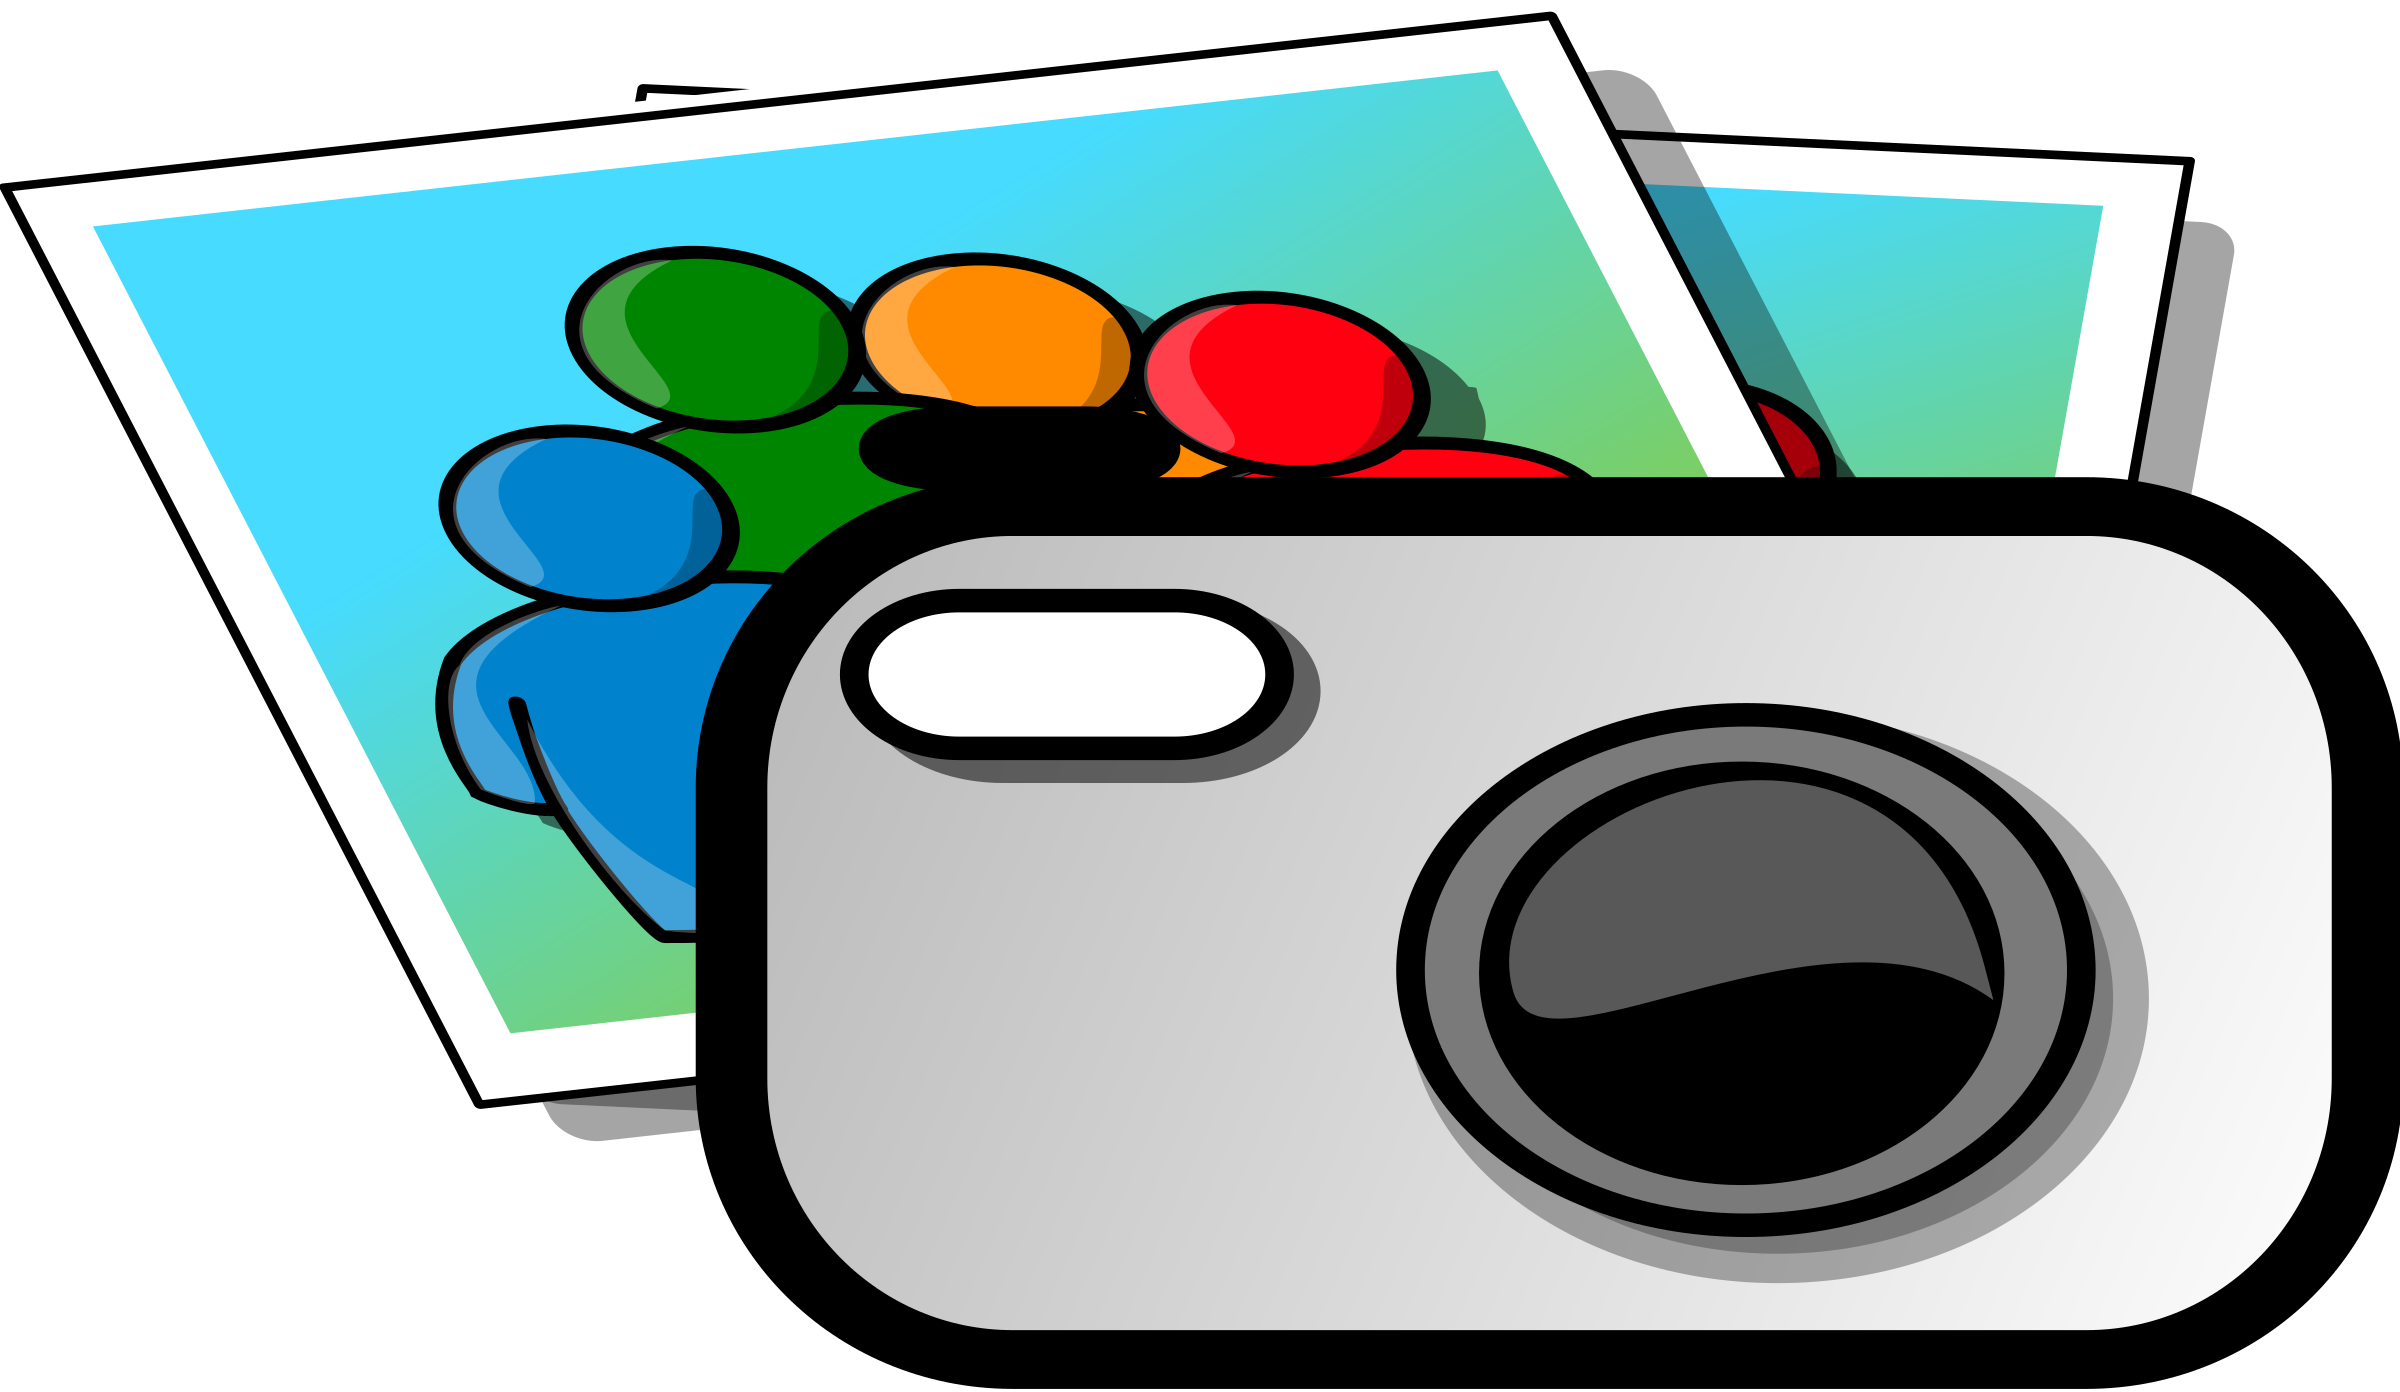 Photo camera big image. Yearbook clipart clip art